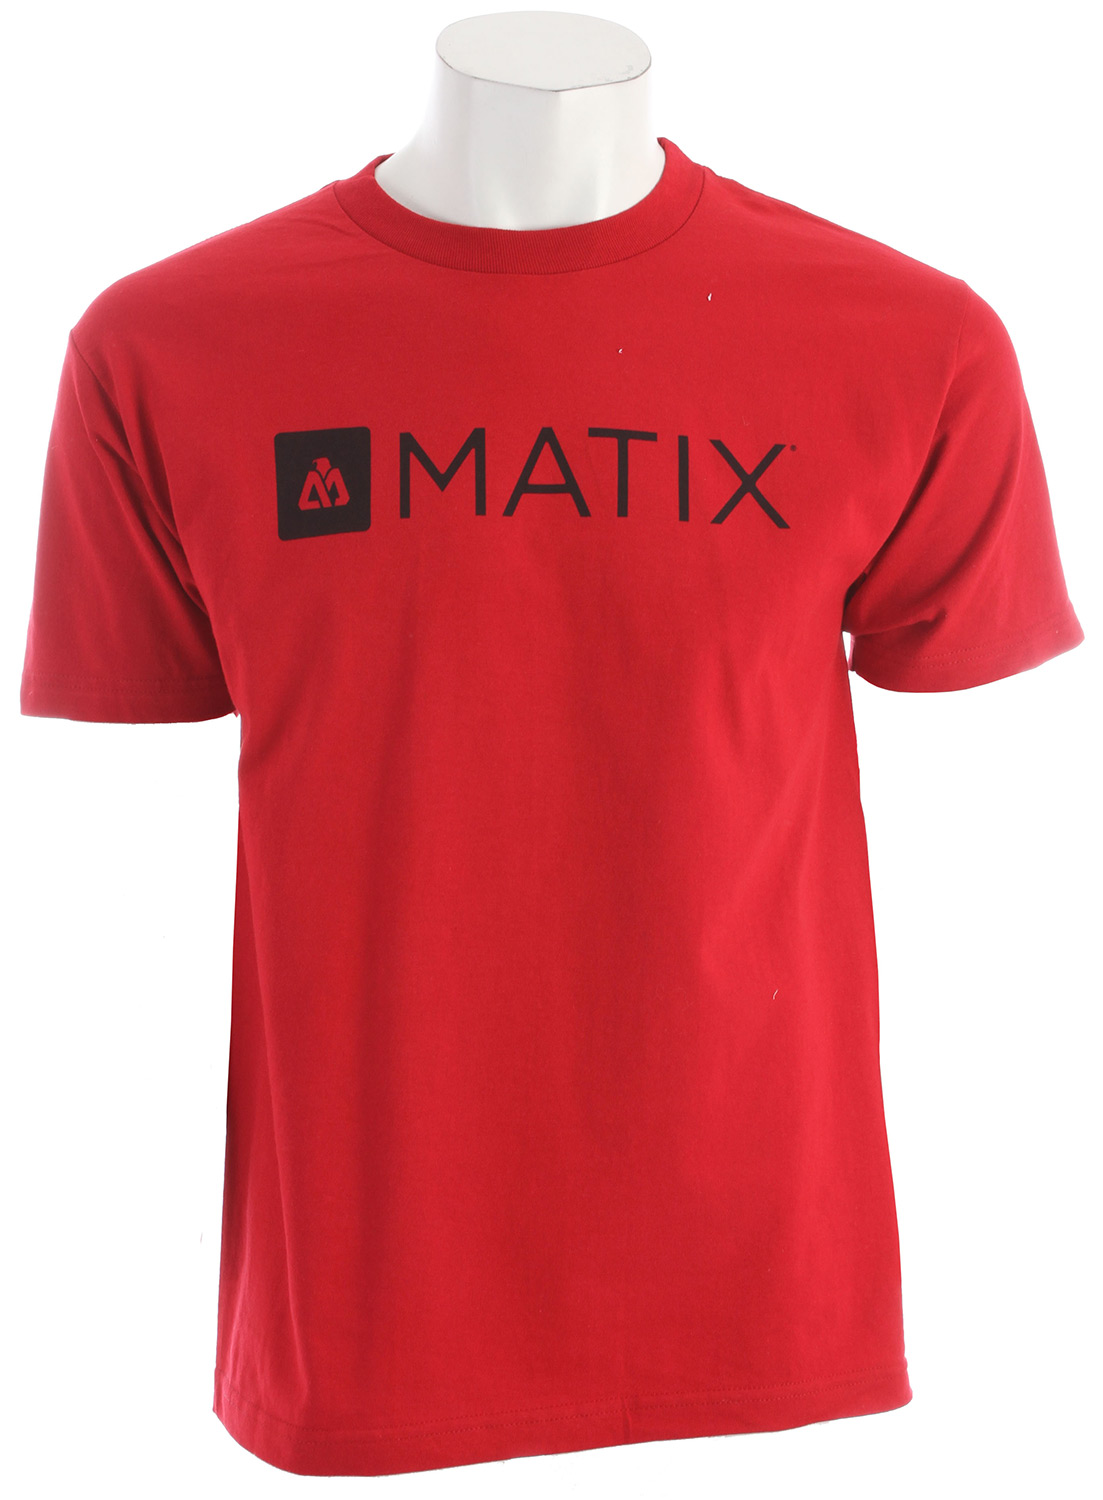 Key Features of the Matix Monolin T-Shirt: Inkprint with cuff label and Monovert lower left back hit. Standard Fit. Material: 100% Cotton - $11.95